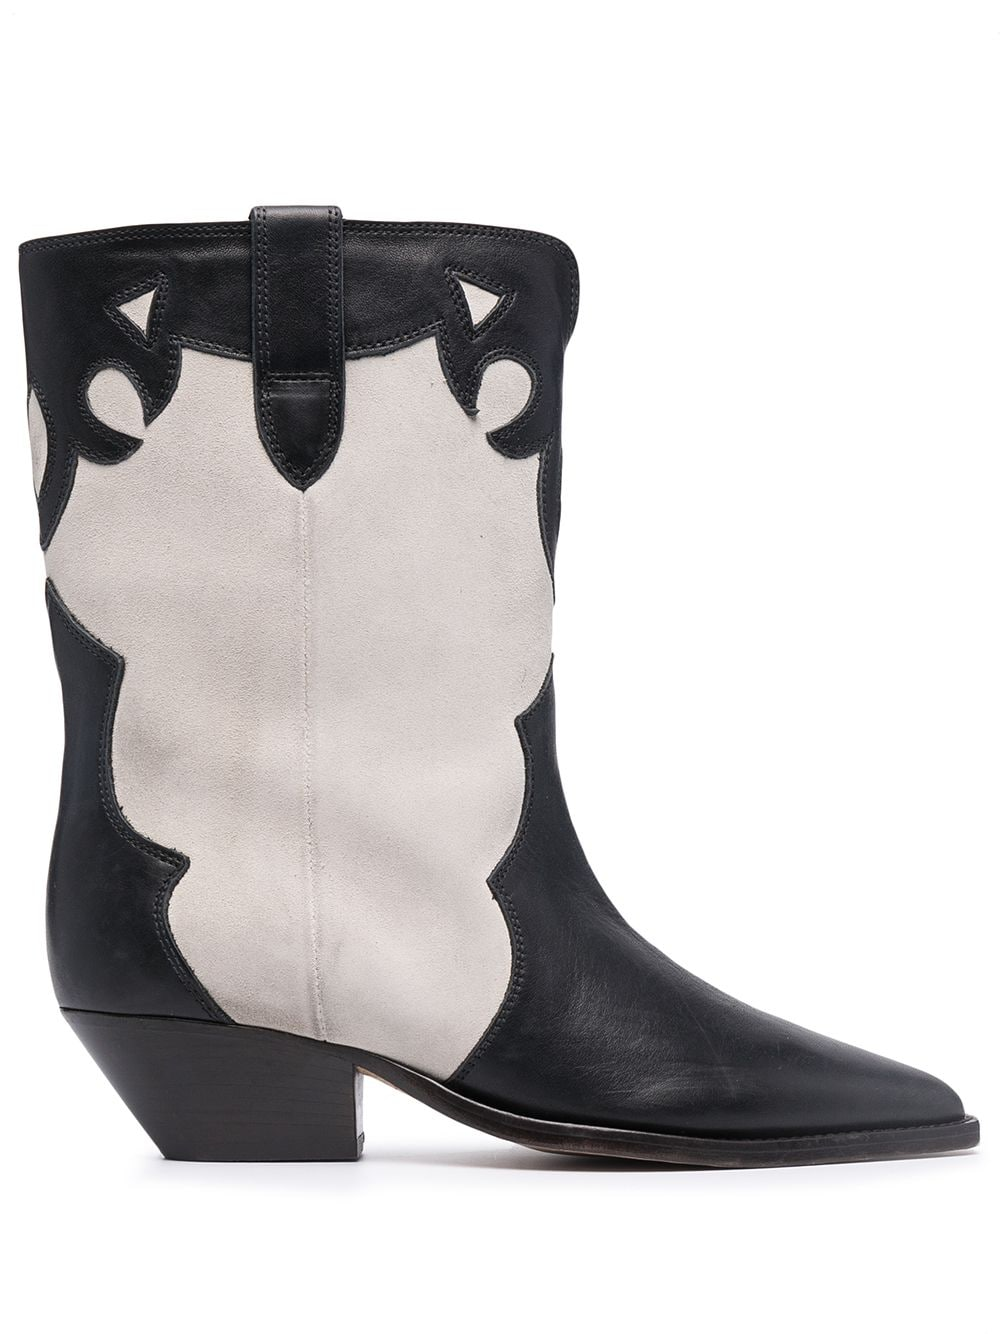 <p class='small-title'>ISABEL MARANT</p>Cowboy Boots